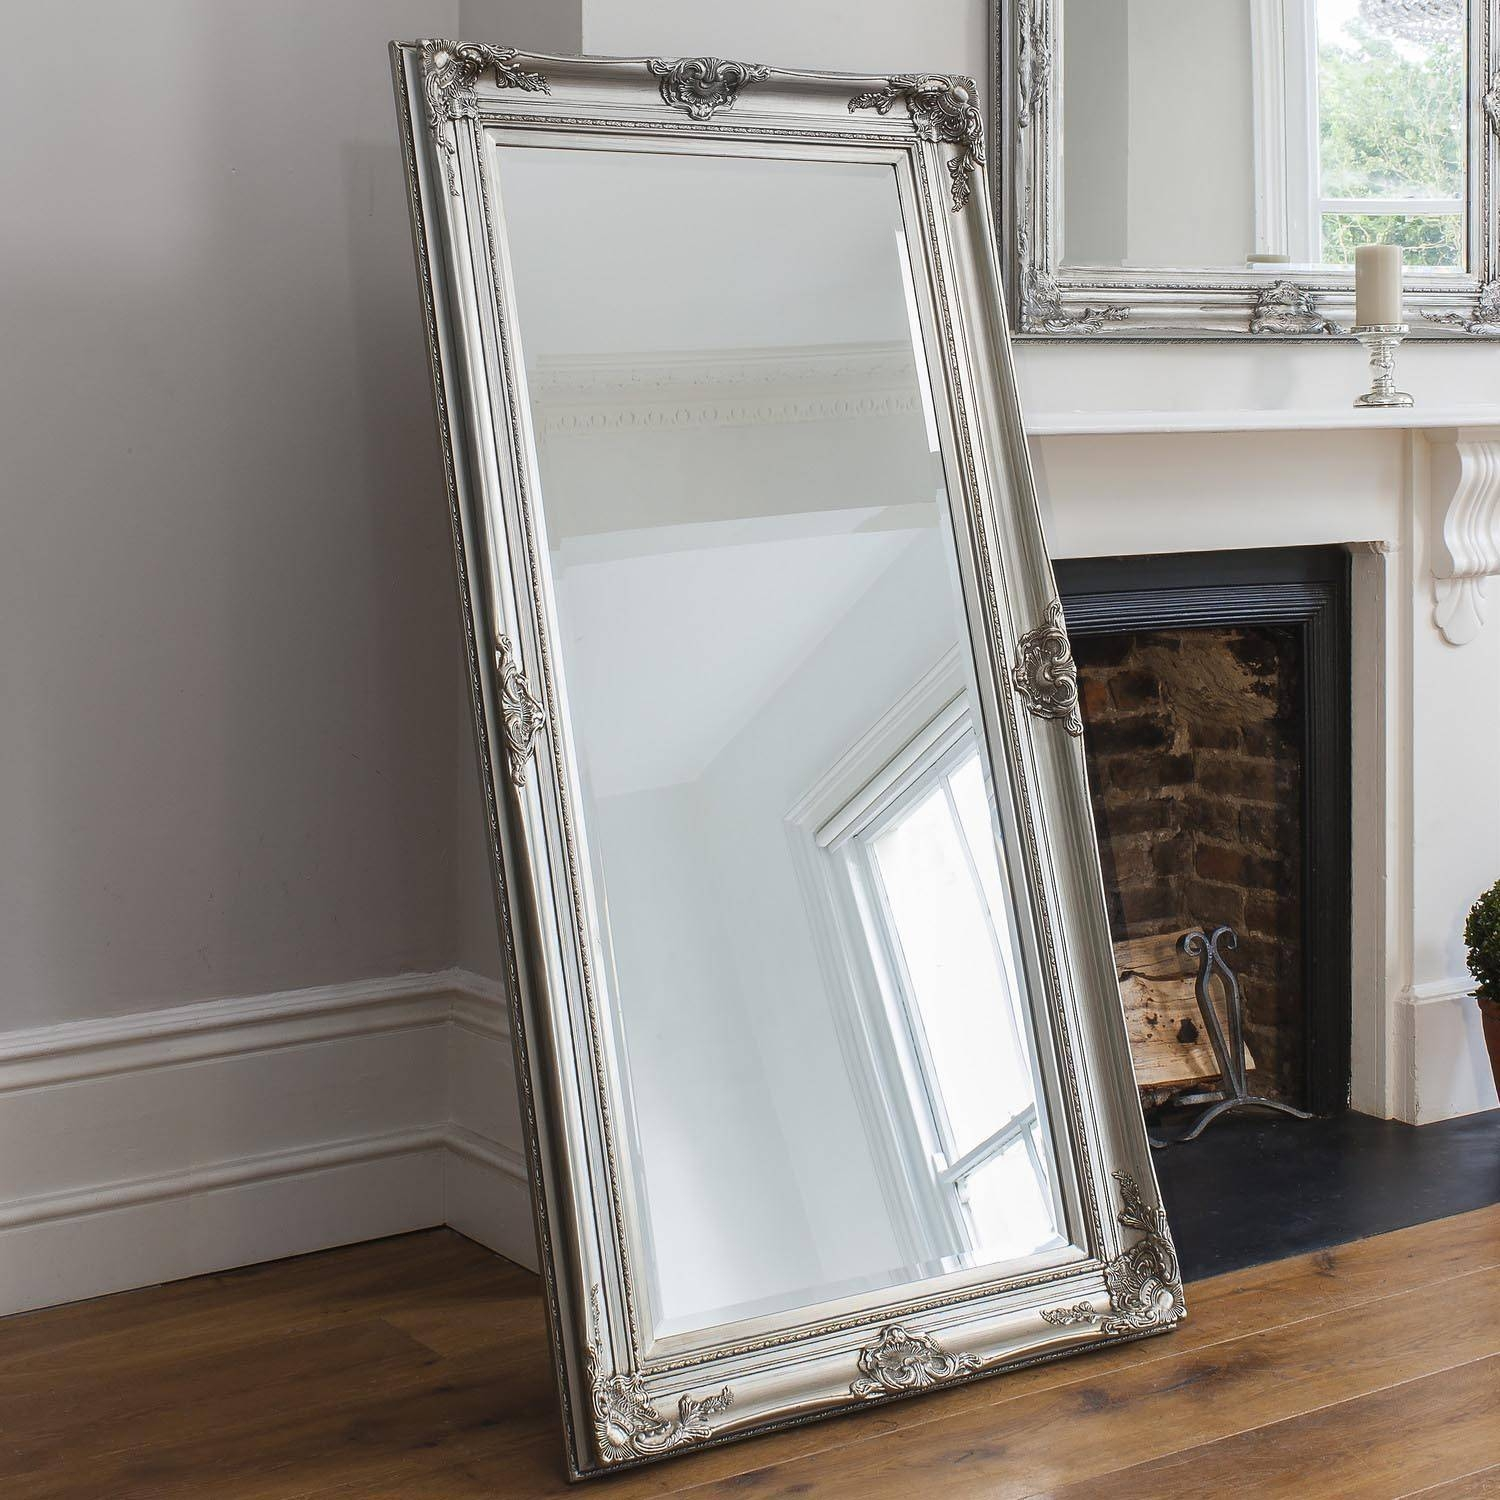 Mirror : French Floor Standing Mirrors Extra Large Mirrors Floor with Big Floor Standing Mirrors (Image 12 of 15)